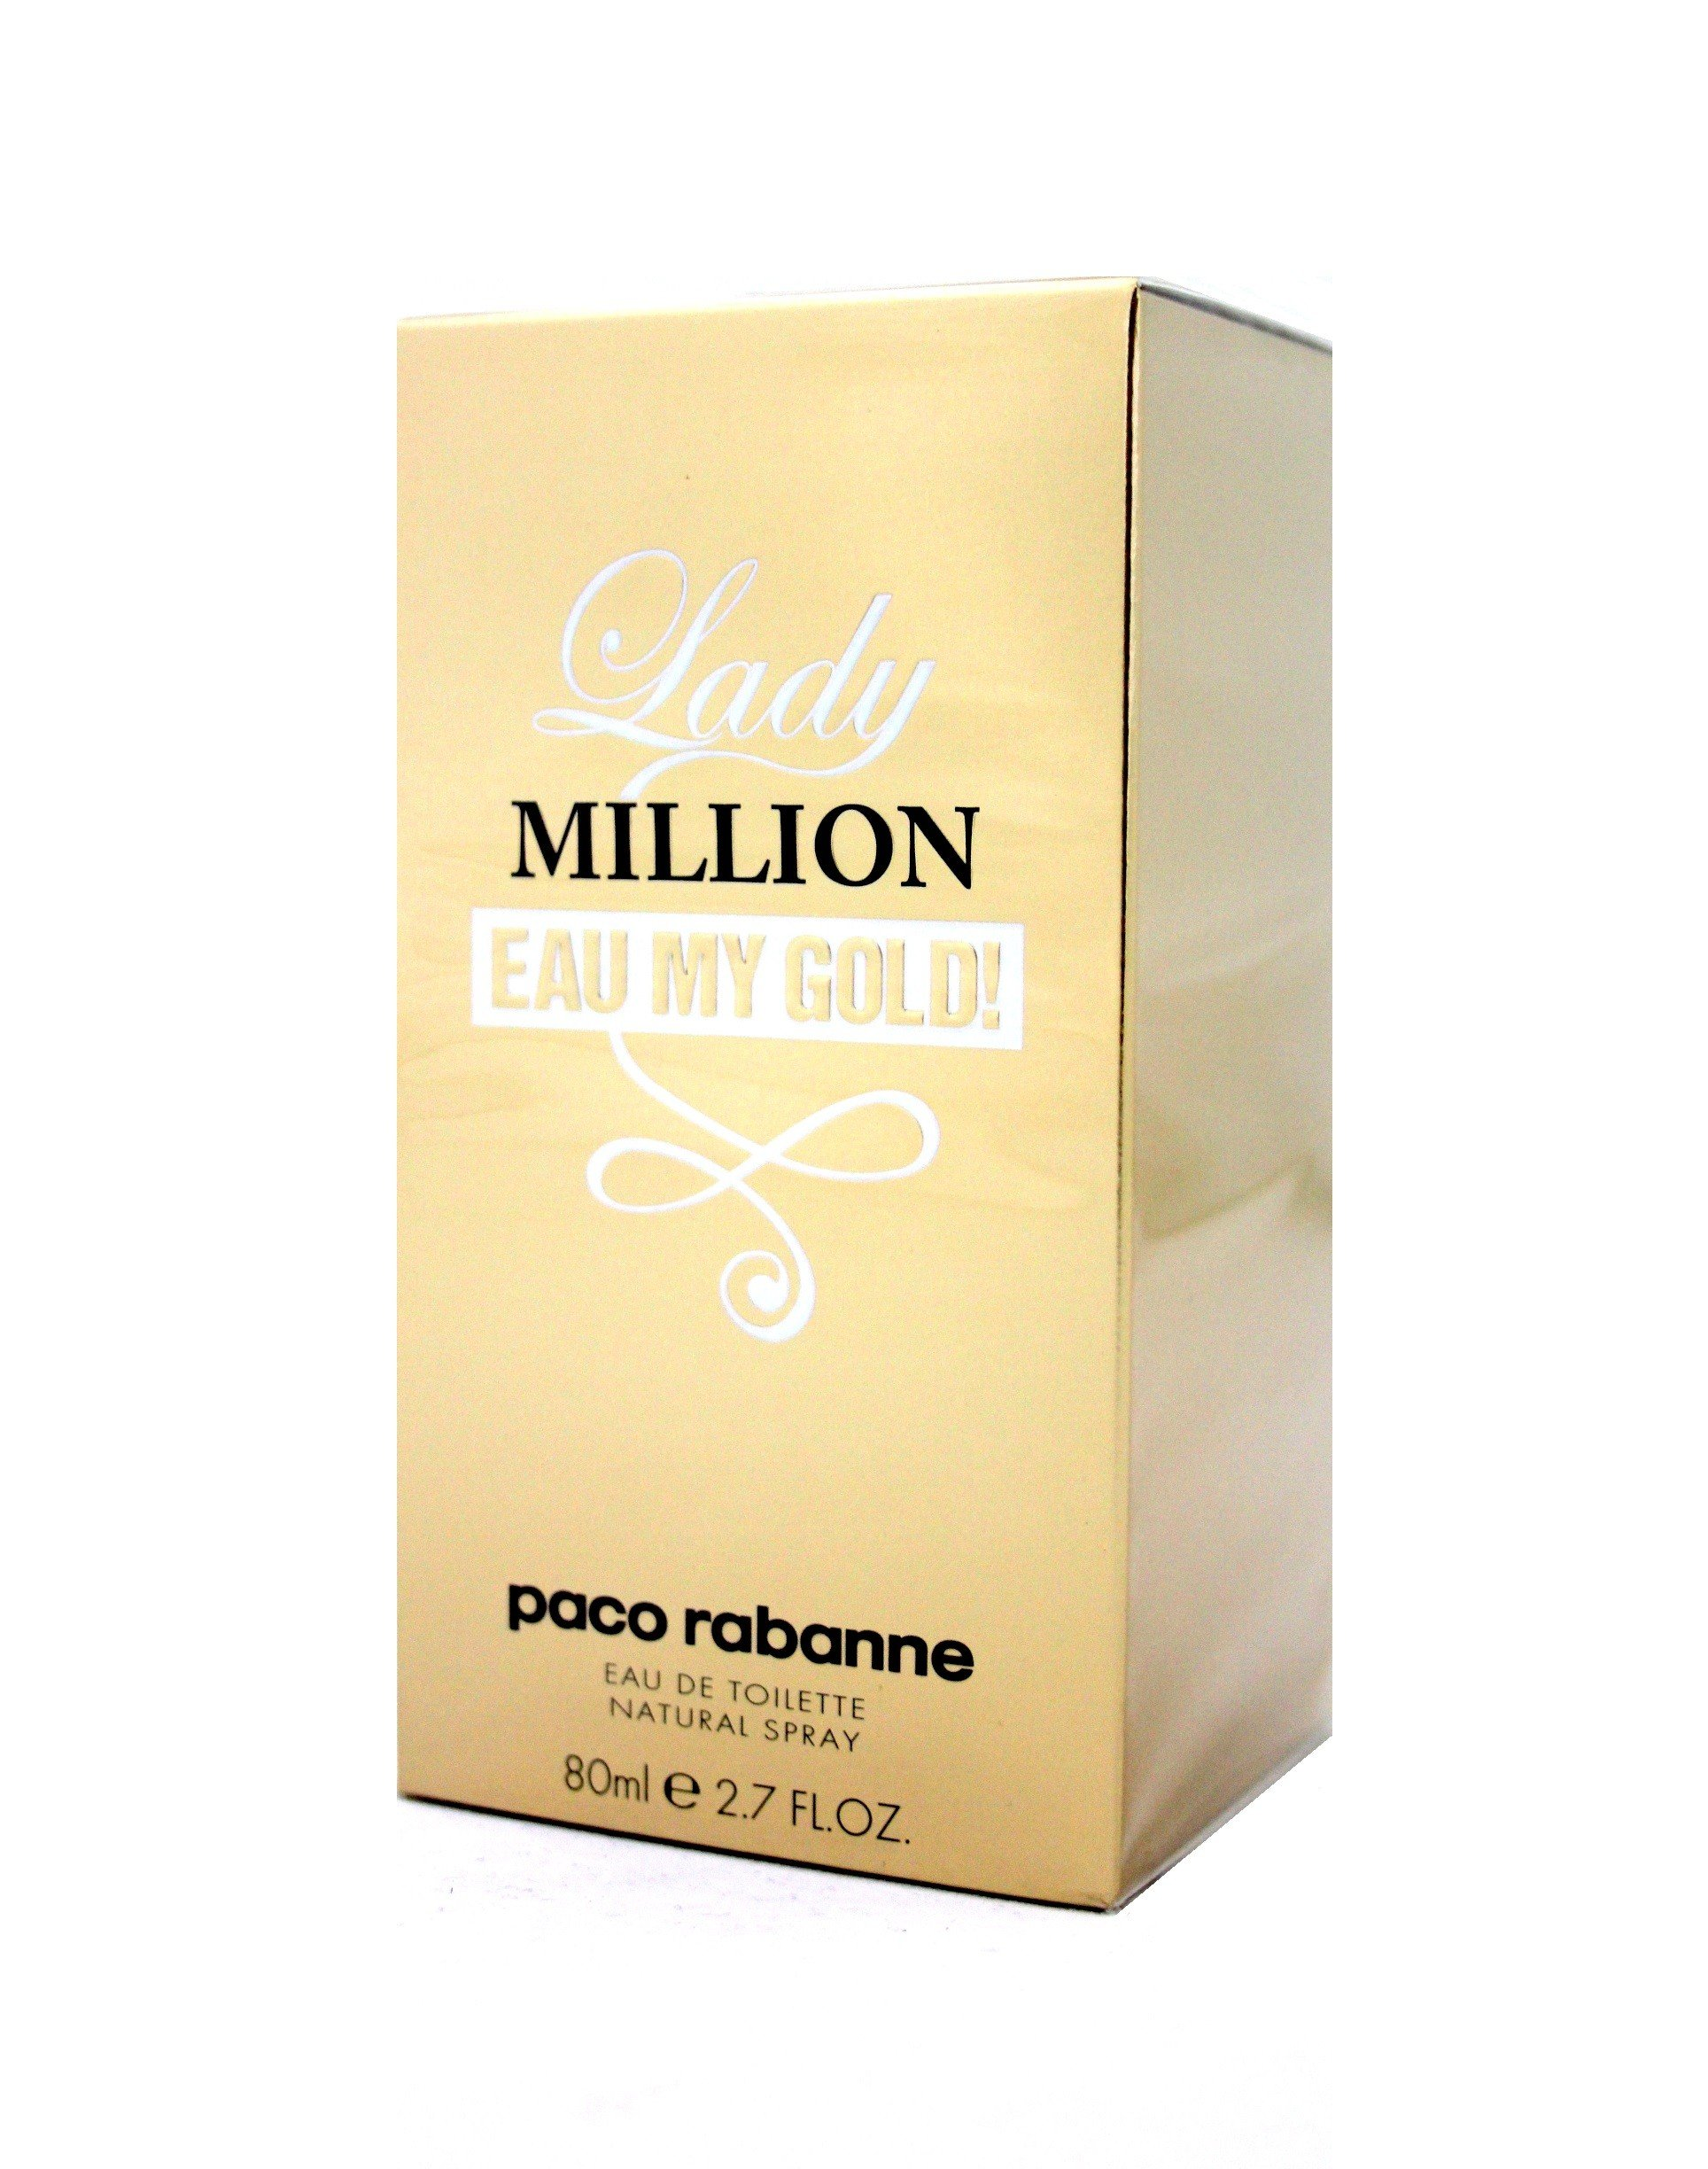 Paco Rabanne Lady Million Eau My Gold! Eau De Toilette